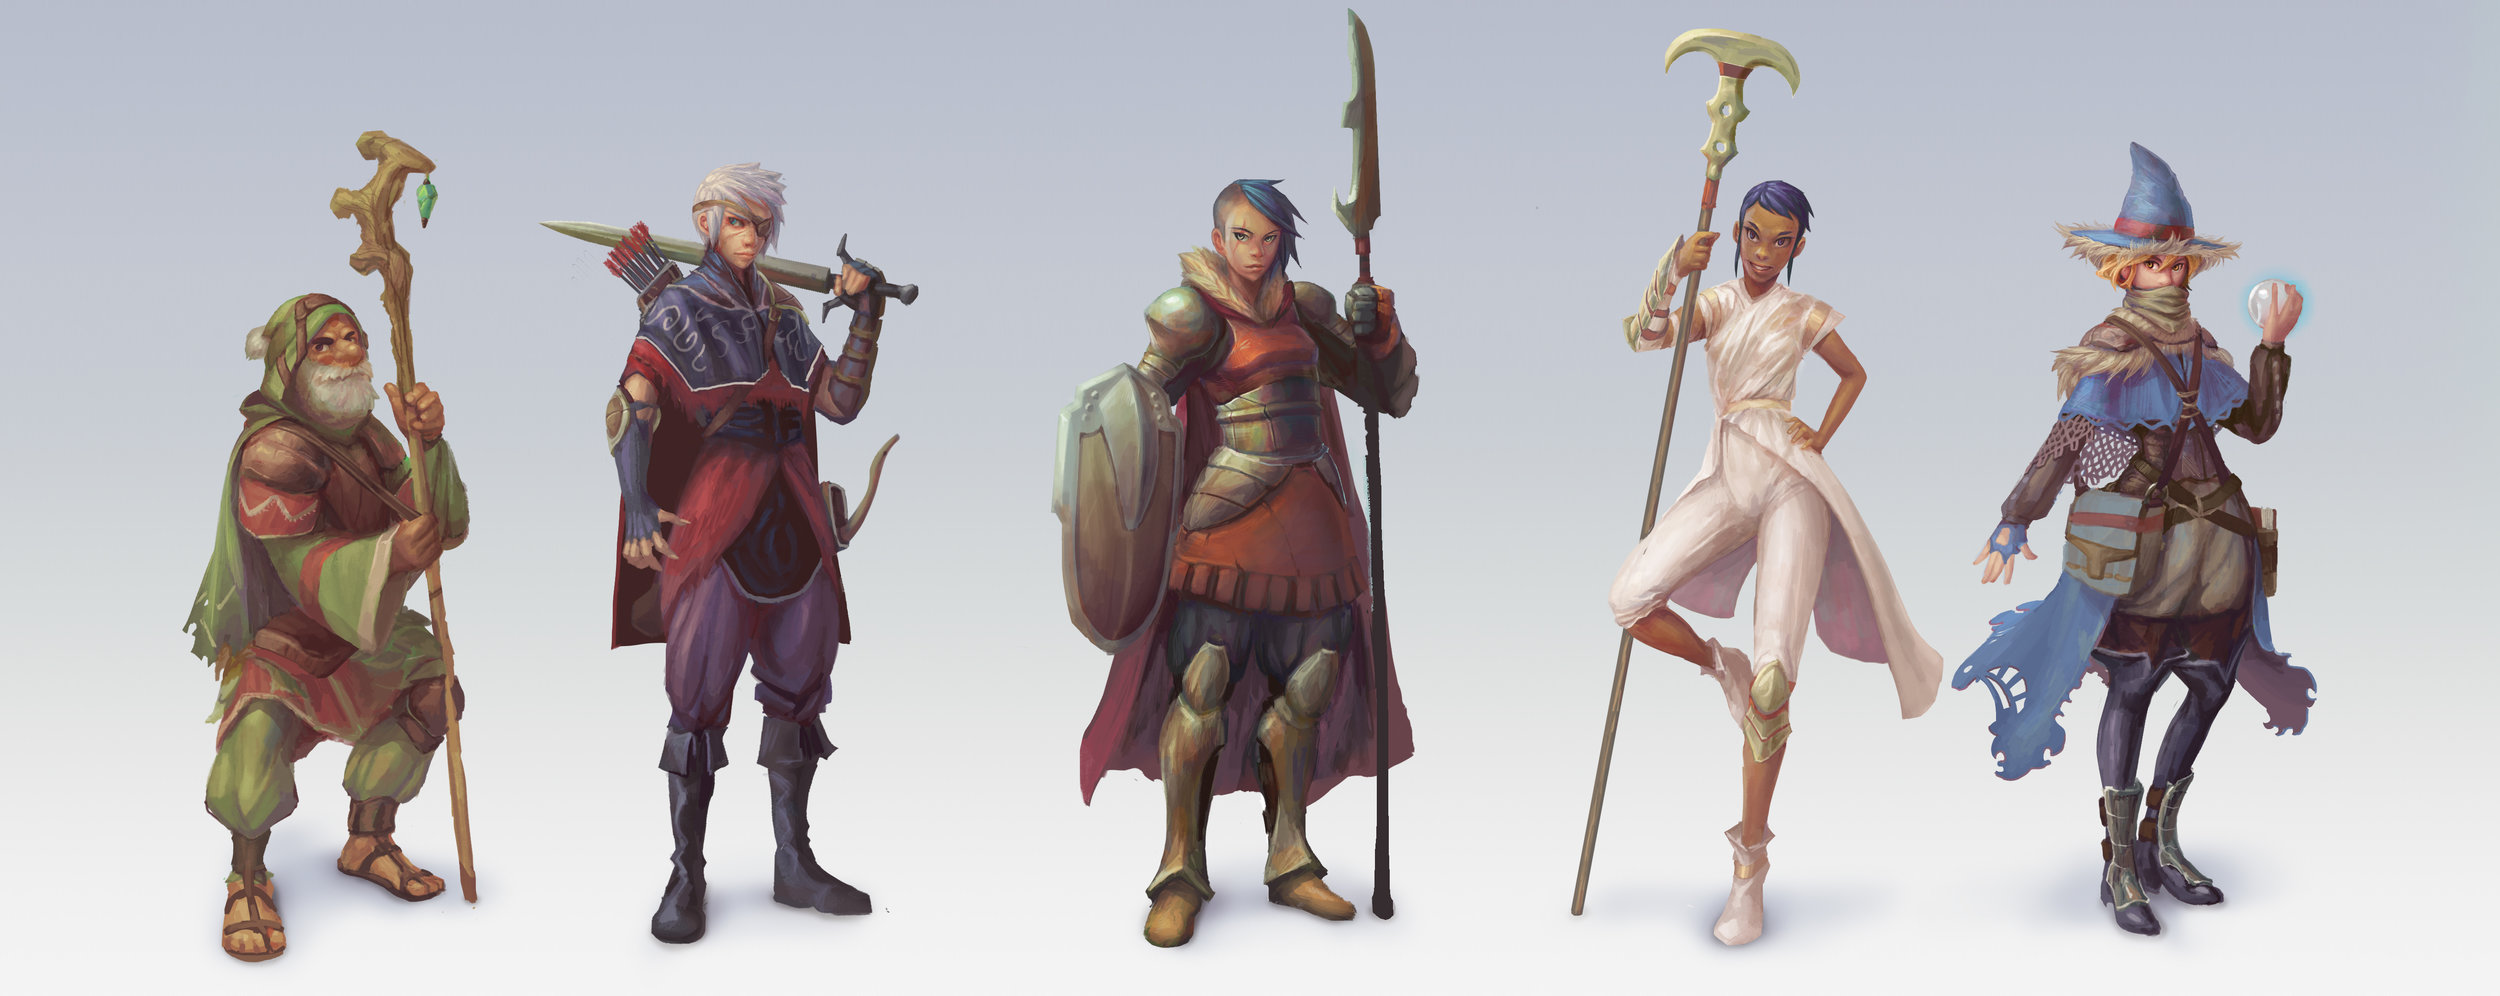 adventurer_concepts-by-adam-marin.jpg